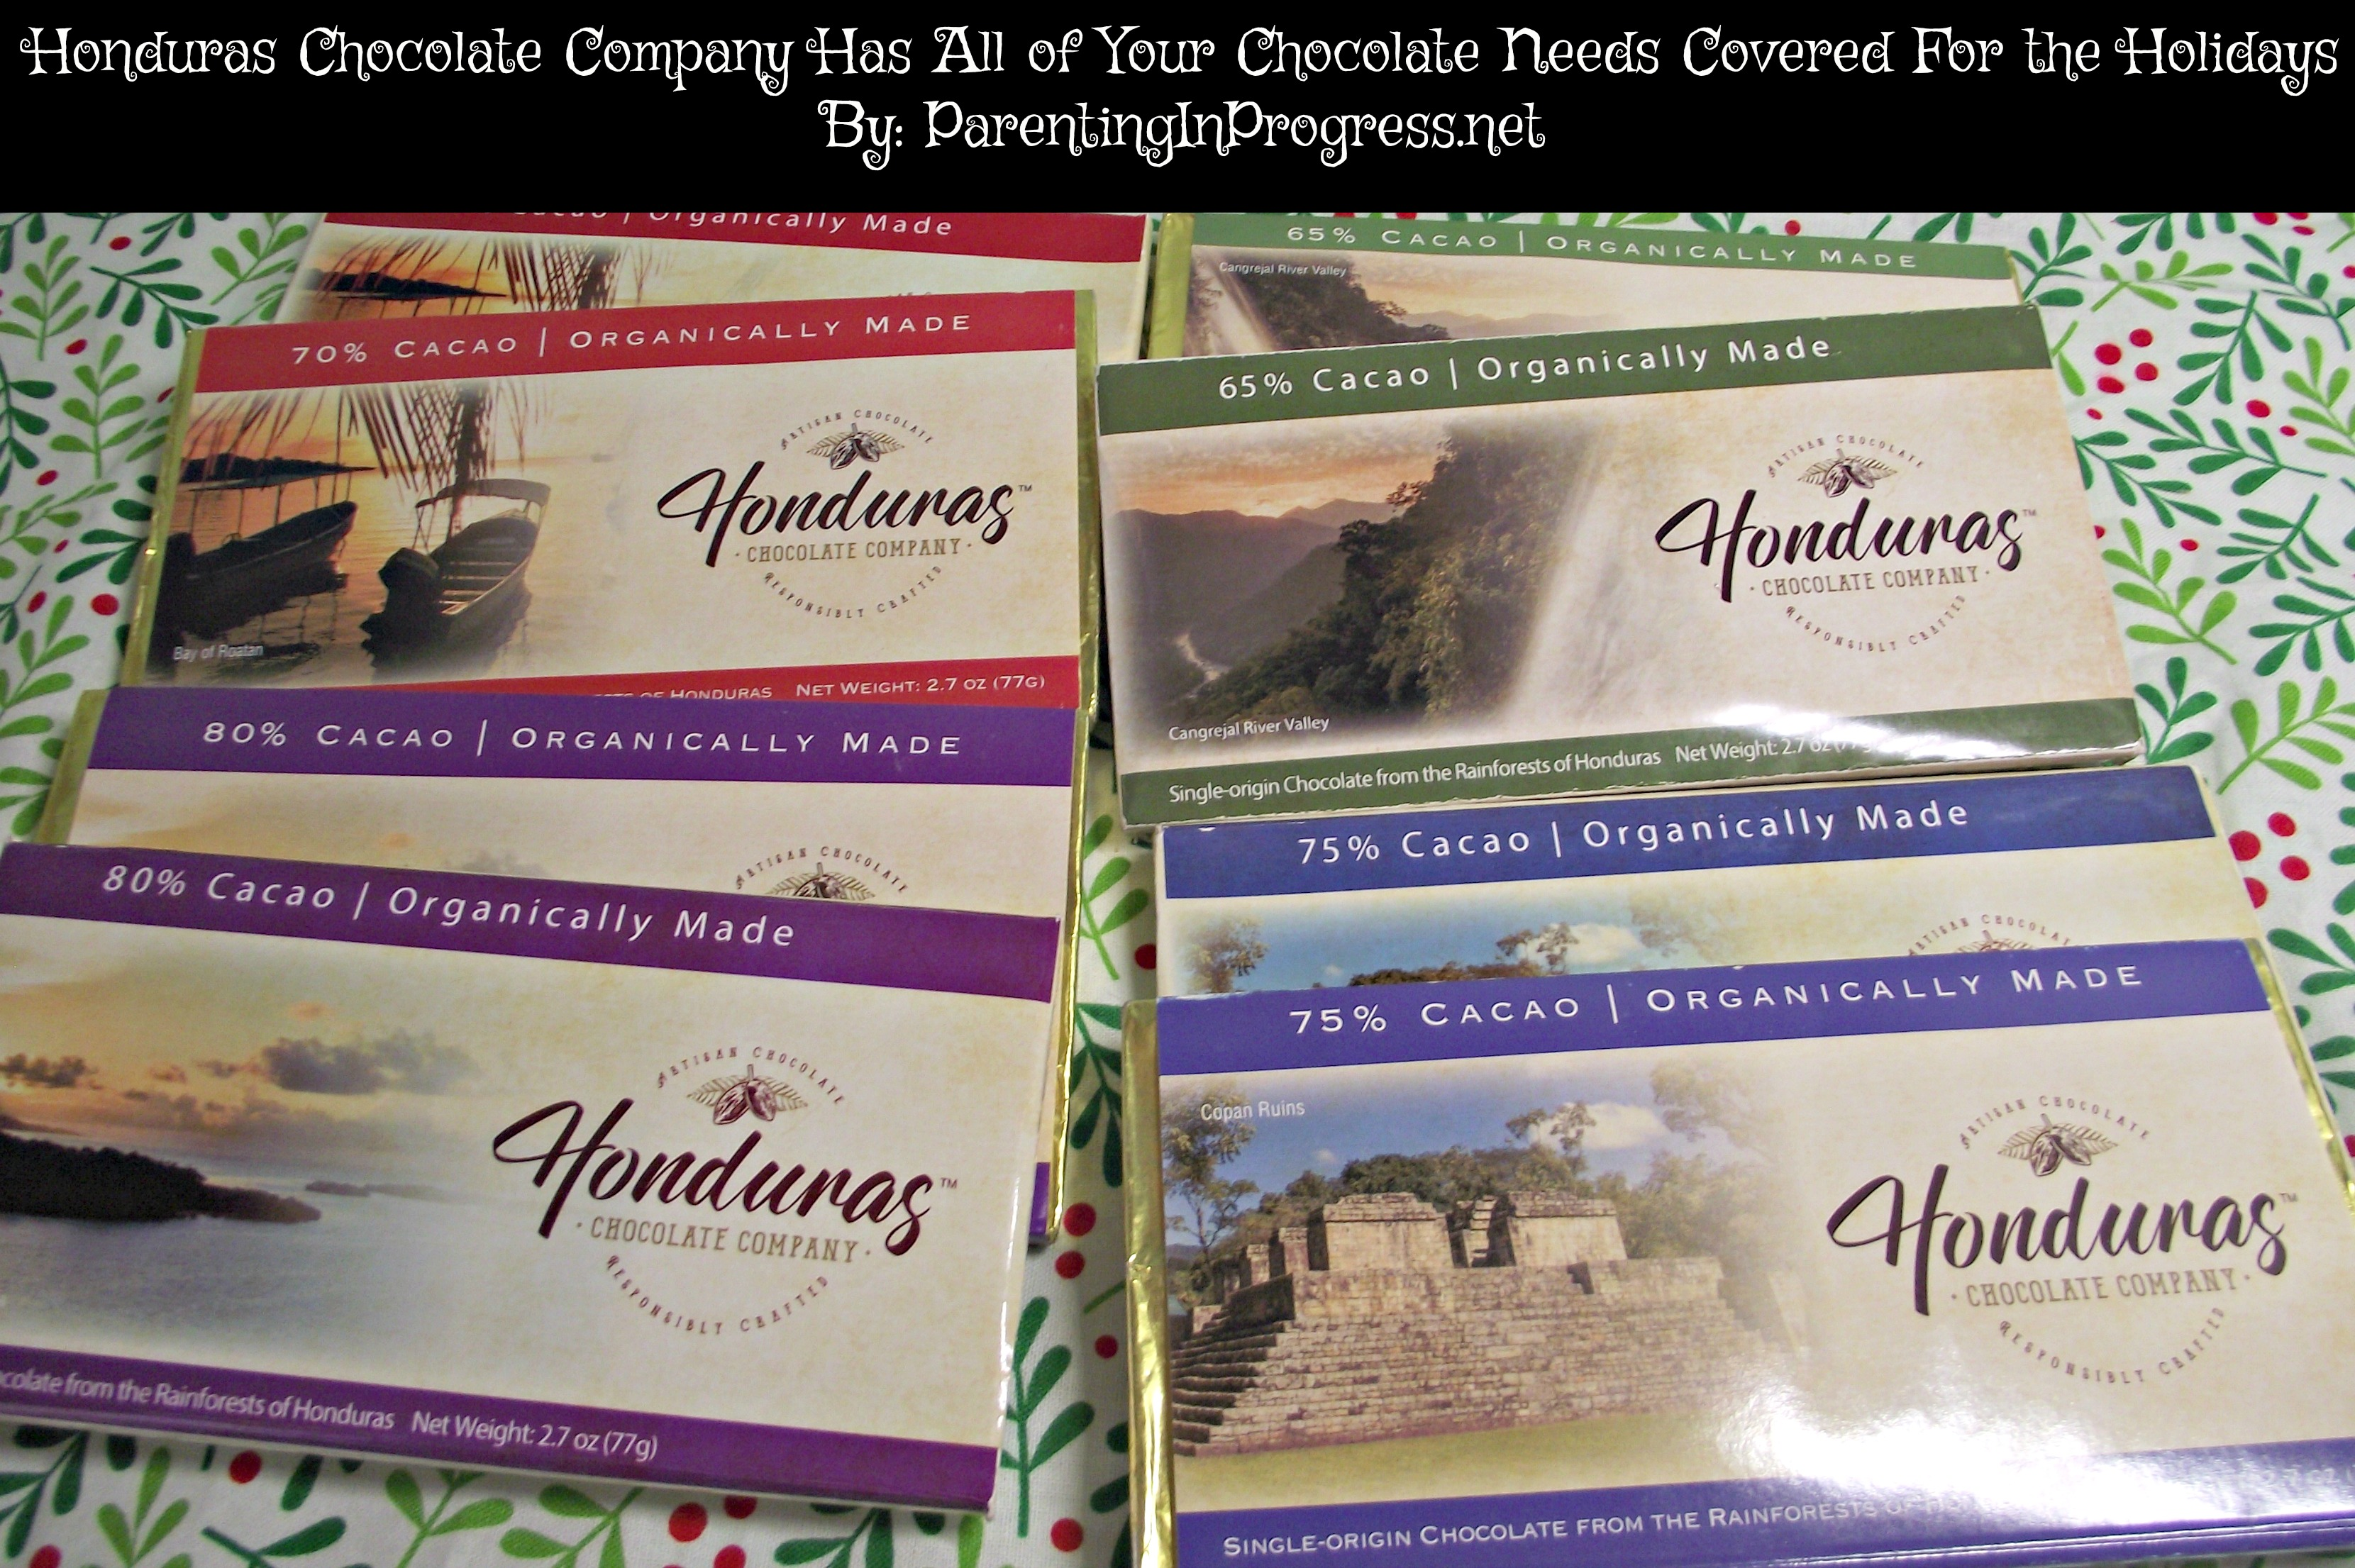 Honduras Chocolate Company Has All of Your Chocolate Needs Covered for the Holidays